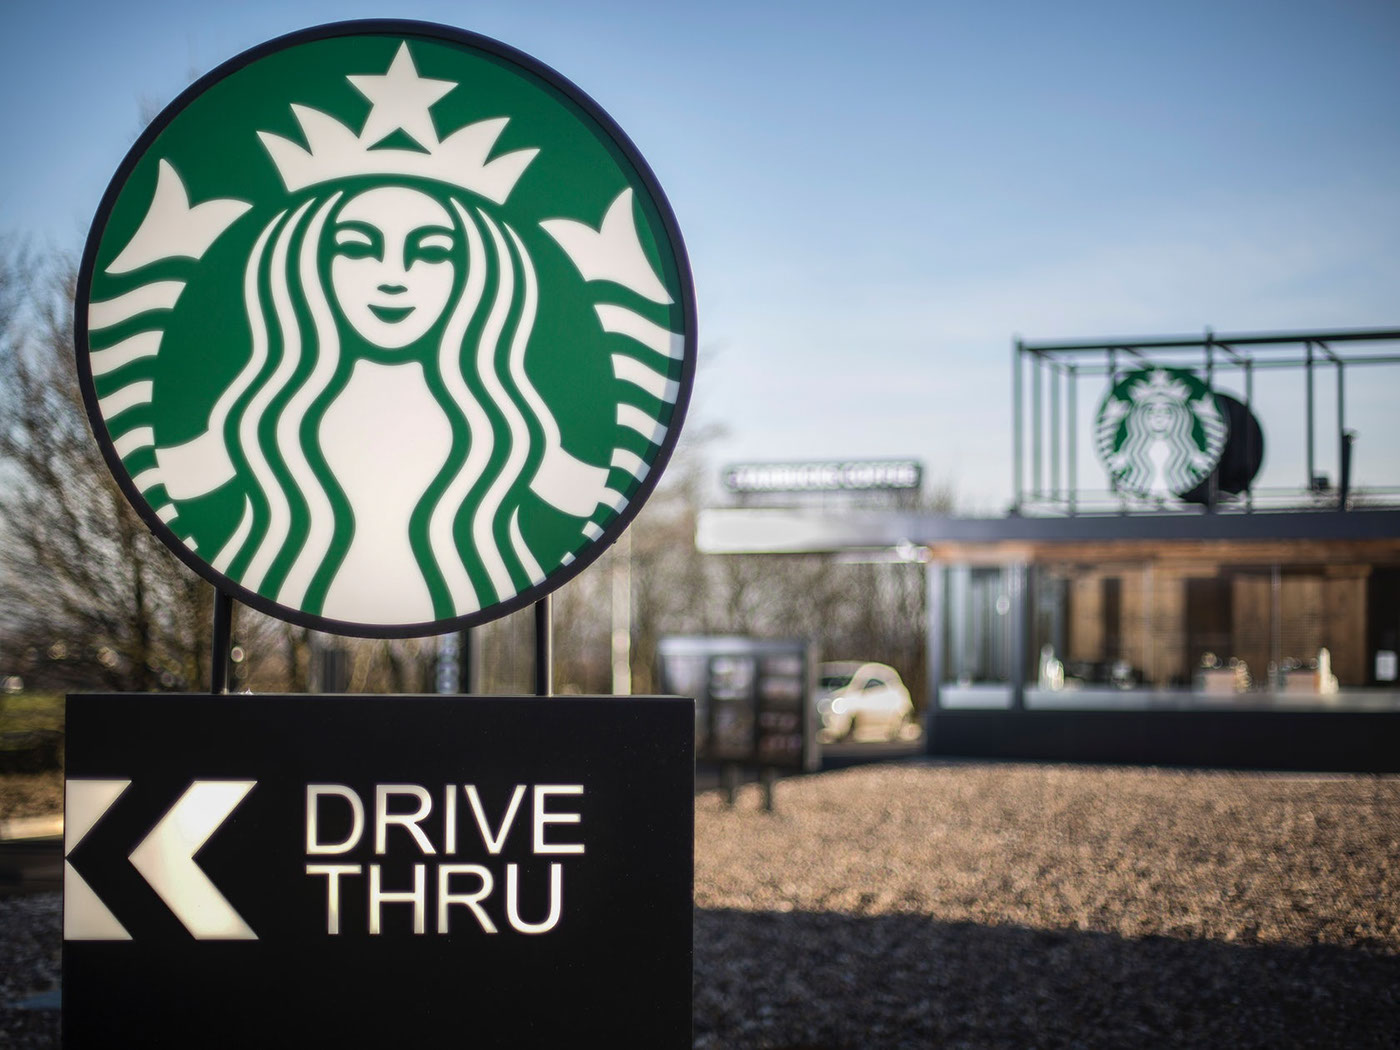 Starbucks Drive Thru - Woodall Services on Behance